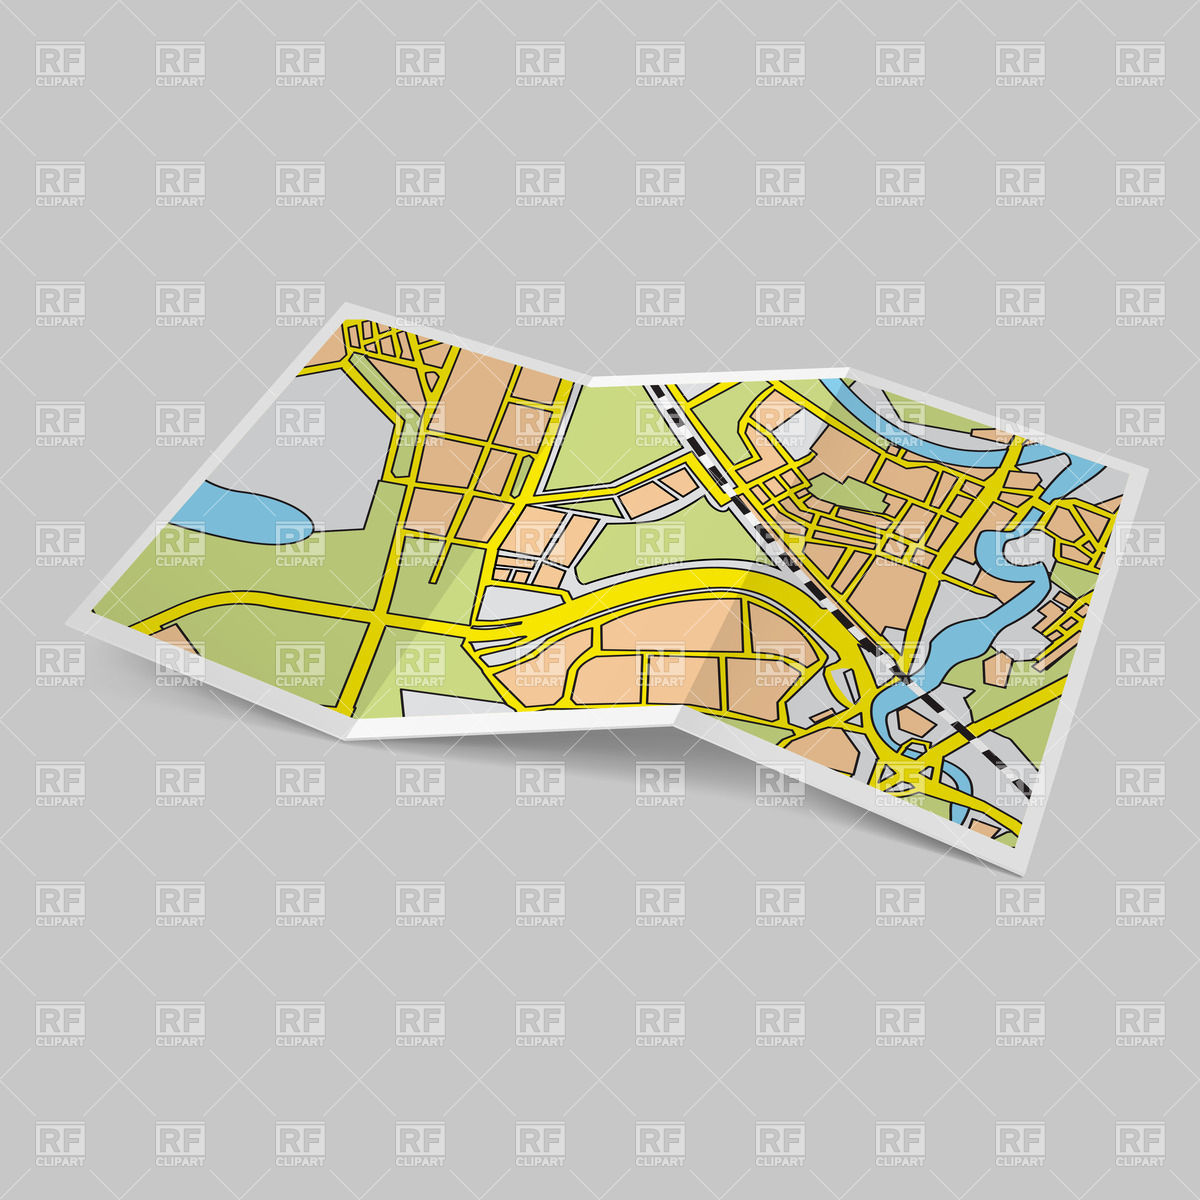 Folded road map clipart clipart freeuse stock Paper city map - folded booklet Vector Image #28496 – RFclipart clipart freeuse stock